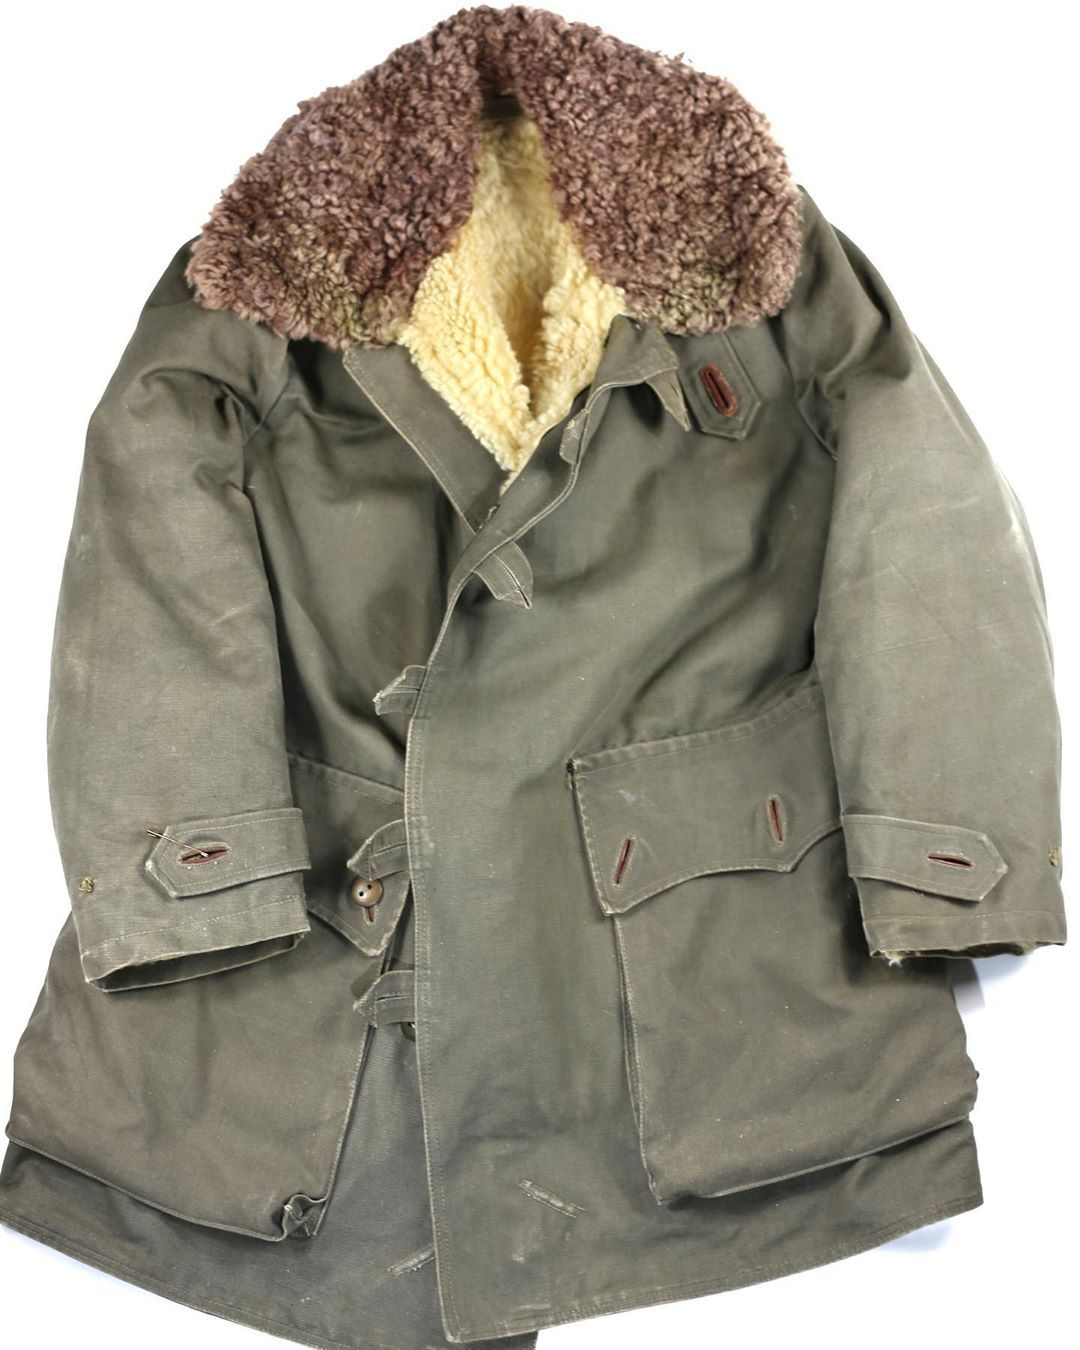 Bunker Clothes On Instagram Swedish Army Shearling Coat 1940 Size 1 L Xl Shipment In All Europe Shearling Coat Clothes Military Jacket [ 1350 x 1080 Pixel ]